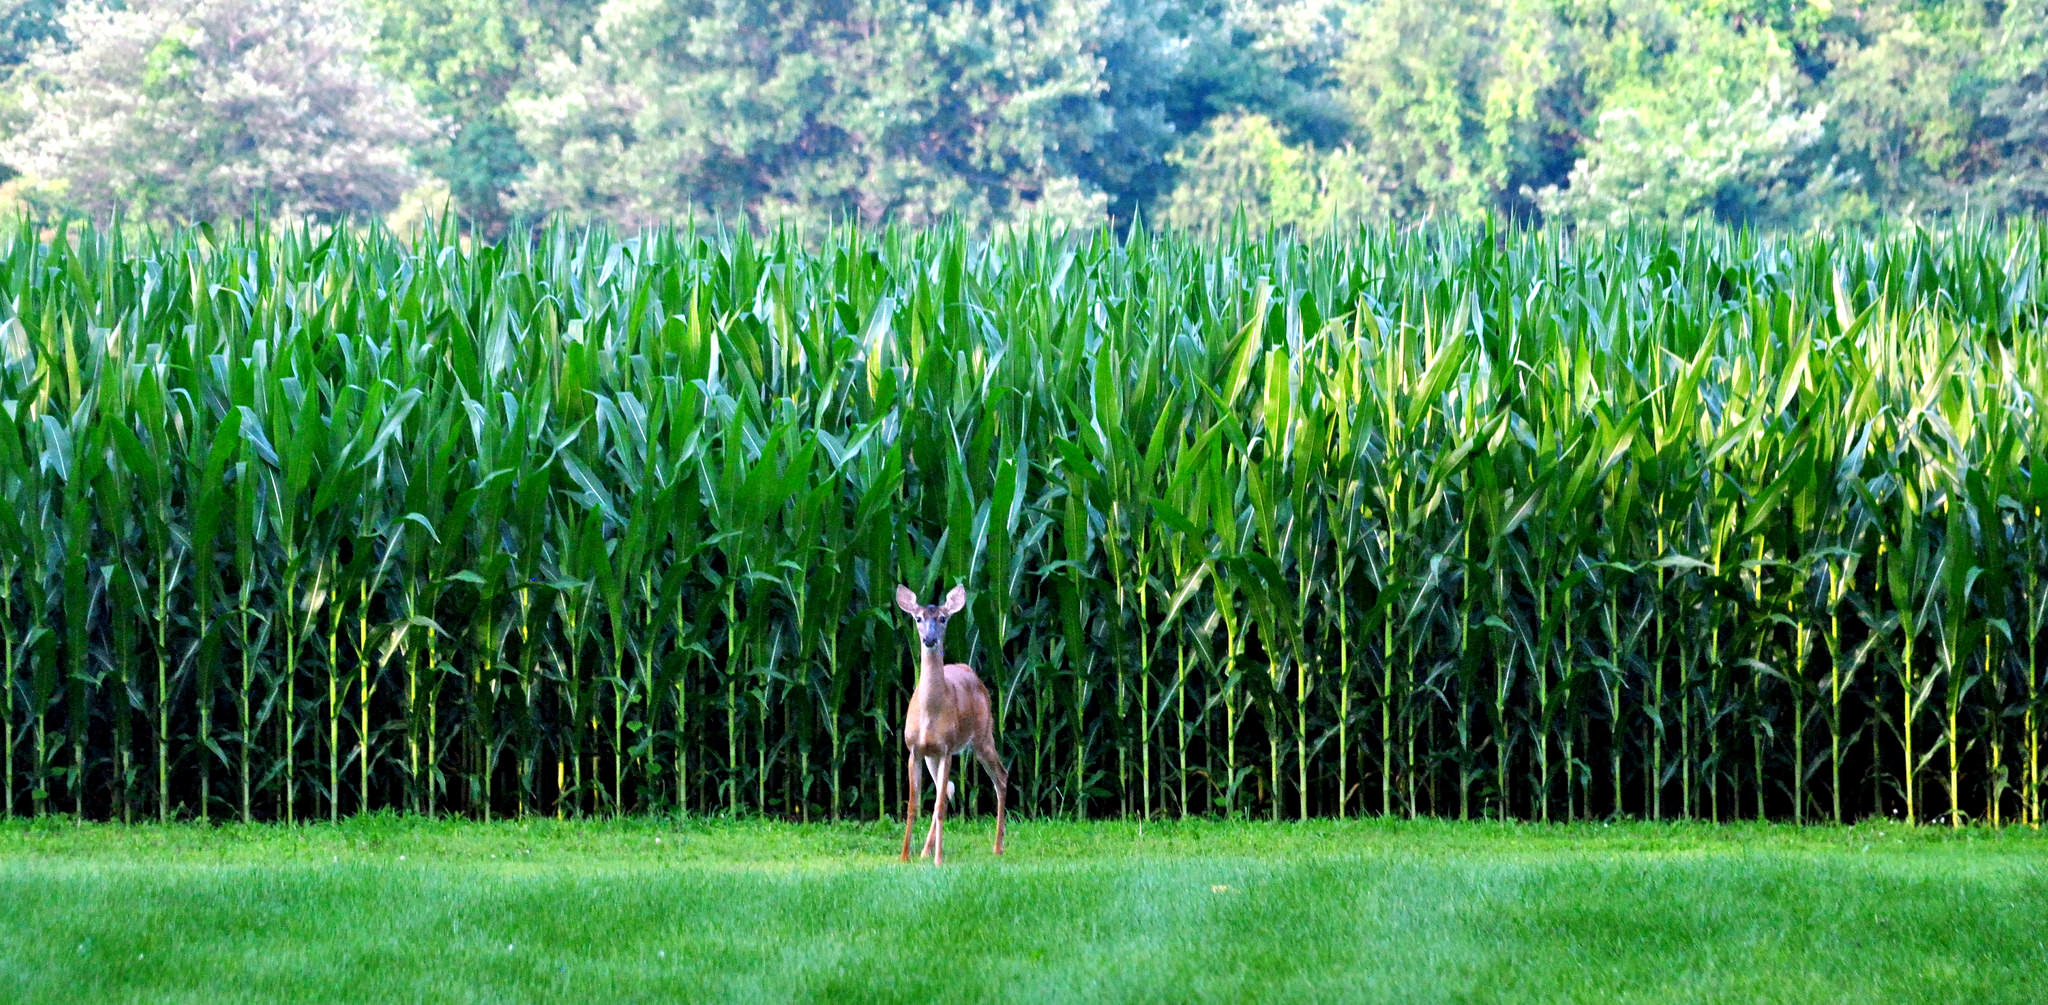 july corn field chester county | chestercountyramblings